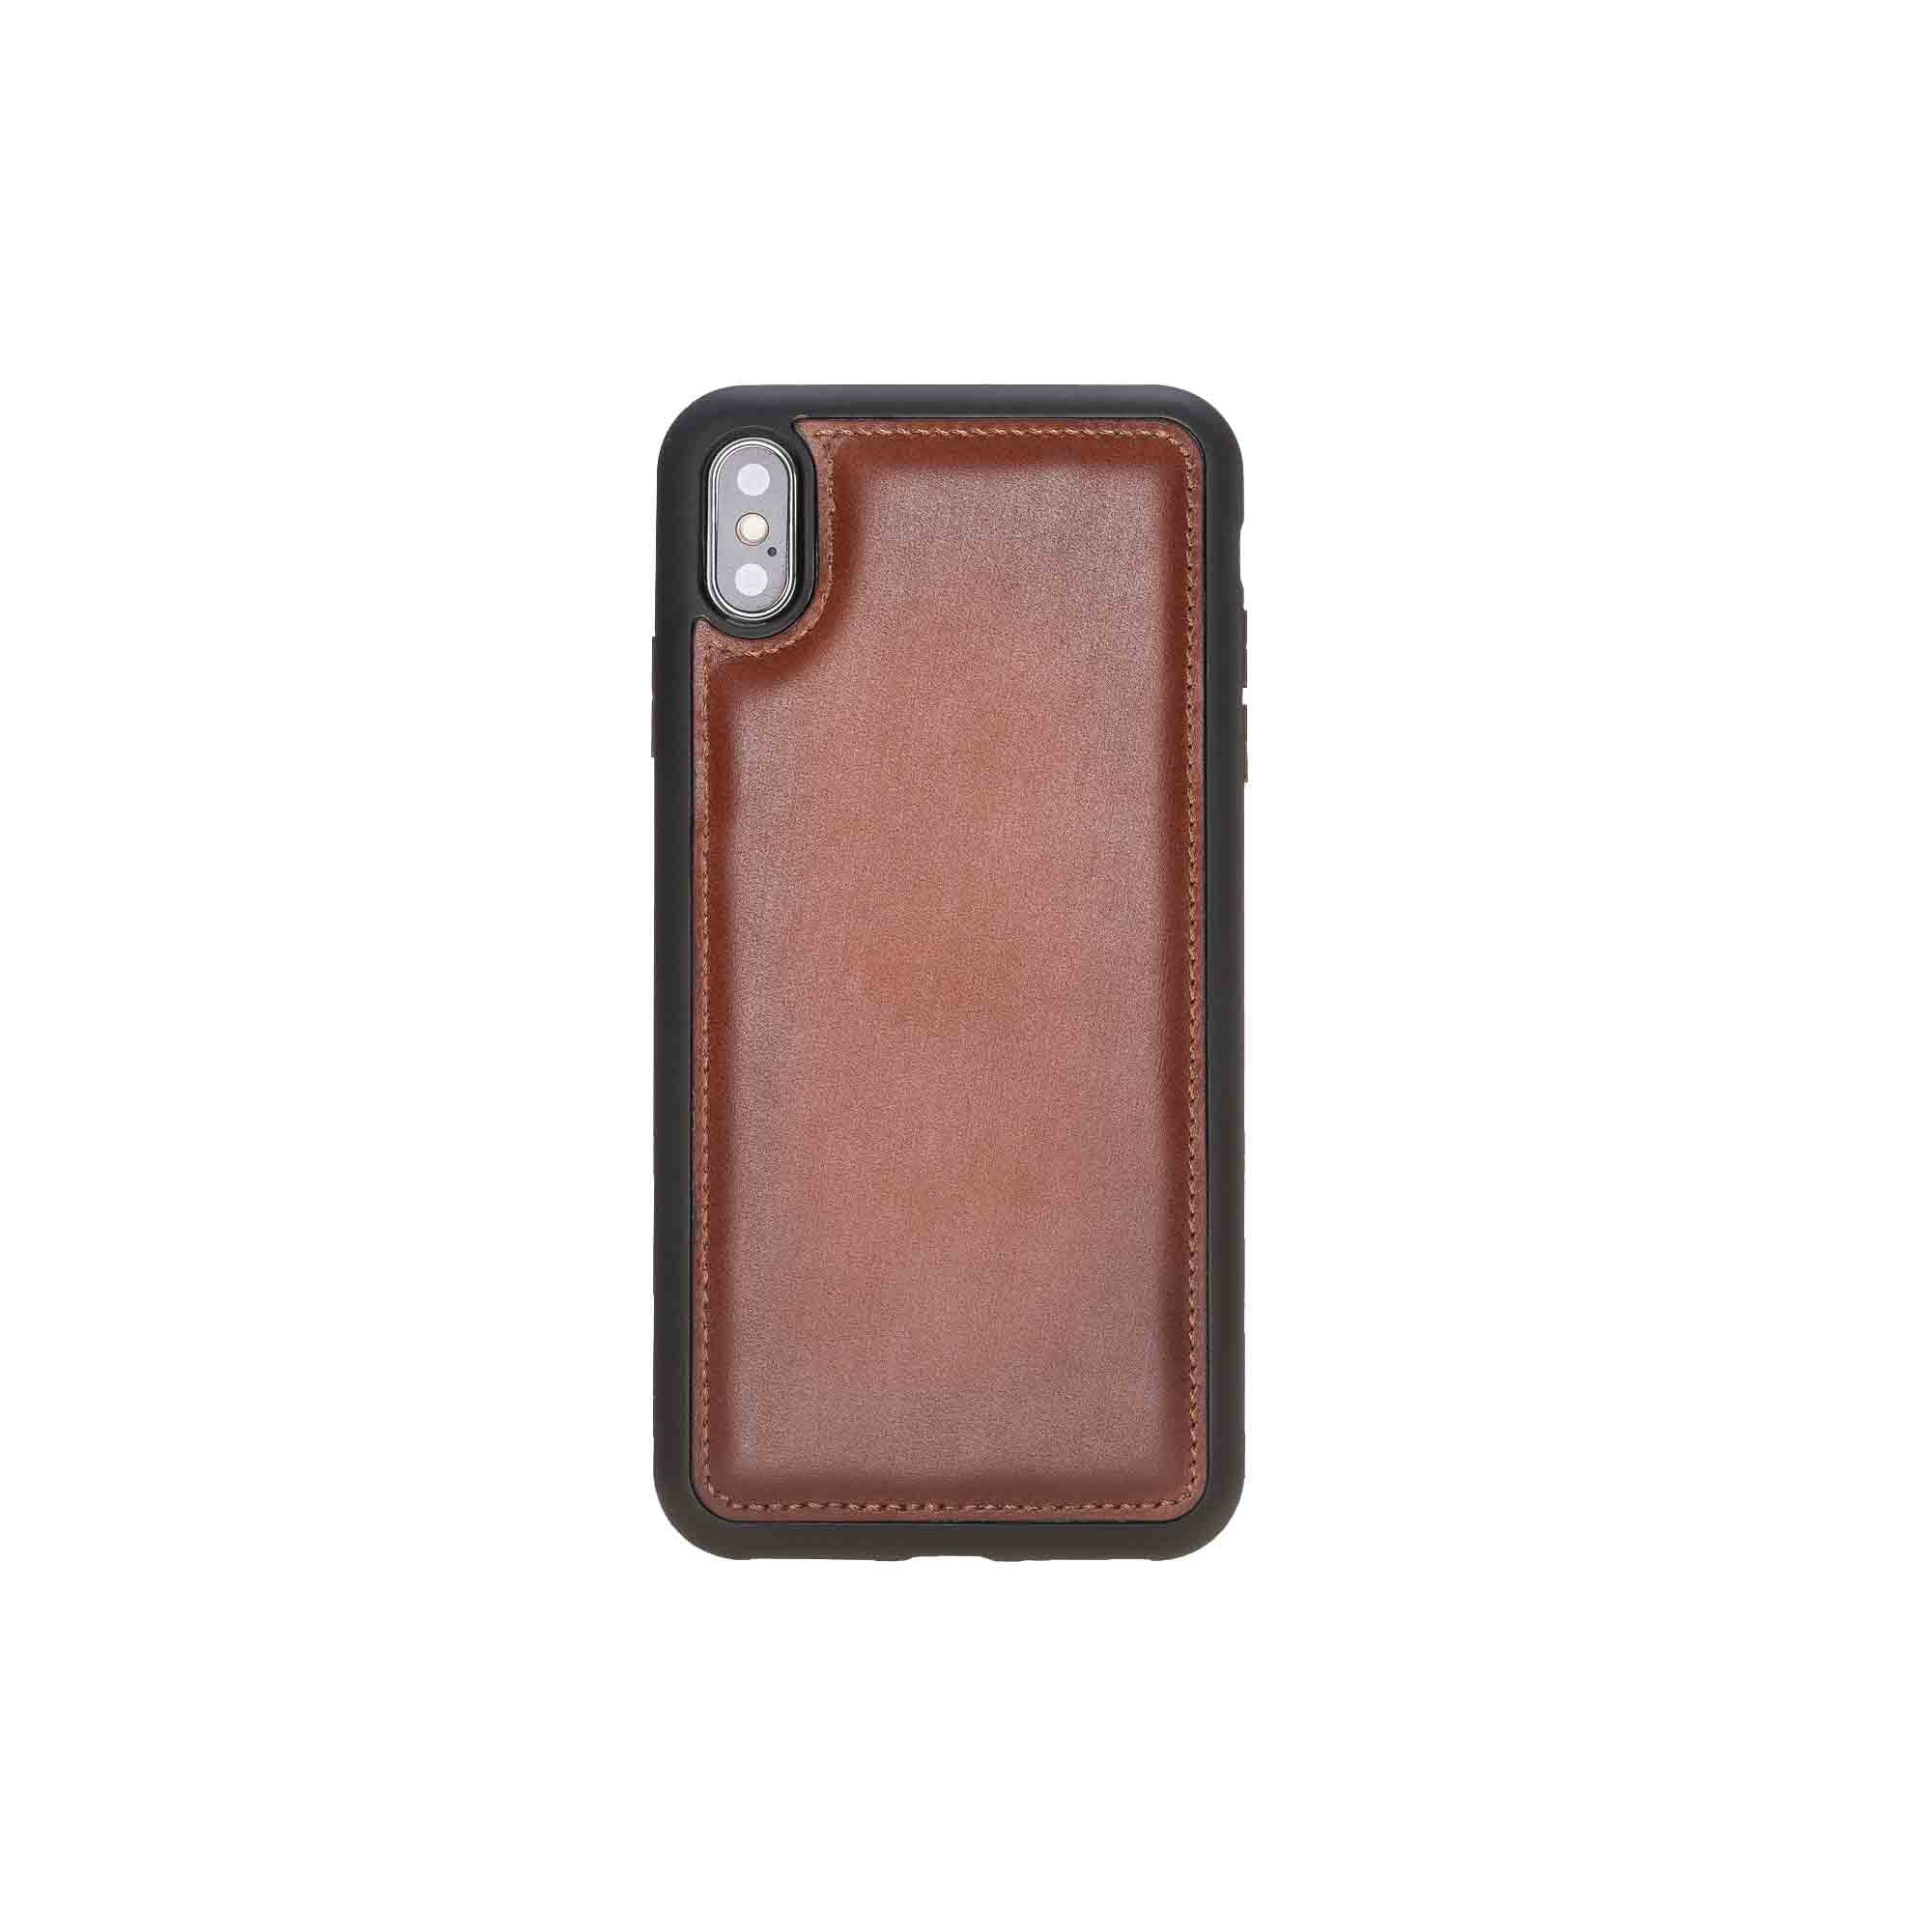 "Flex Cover Leather Case for iPhone XS Max (6.5"") - EFFECT BROWN - saracleather"